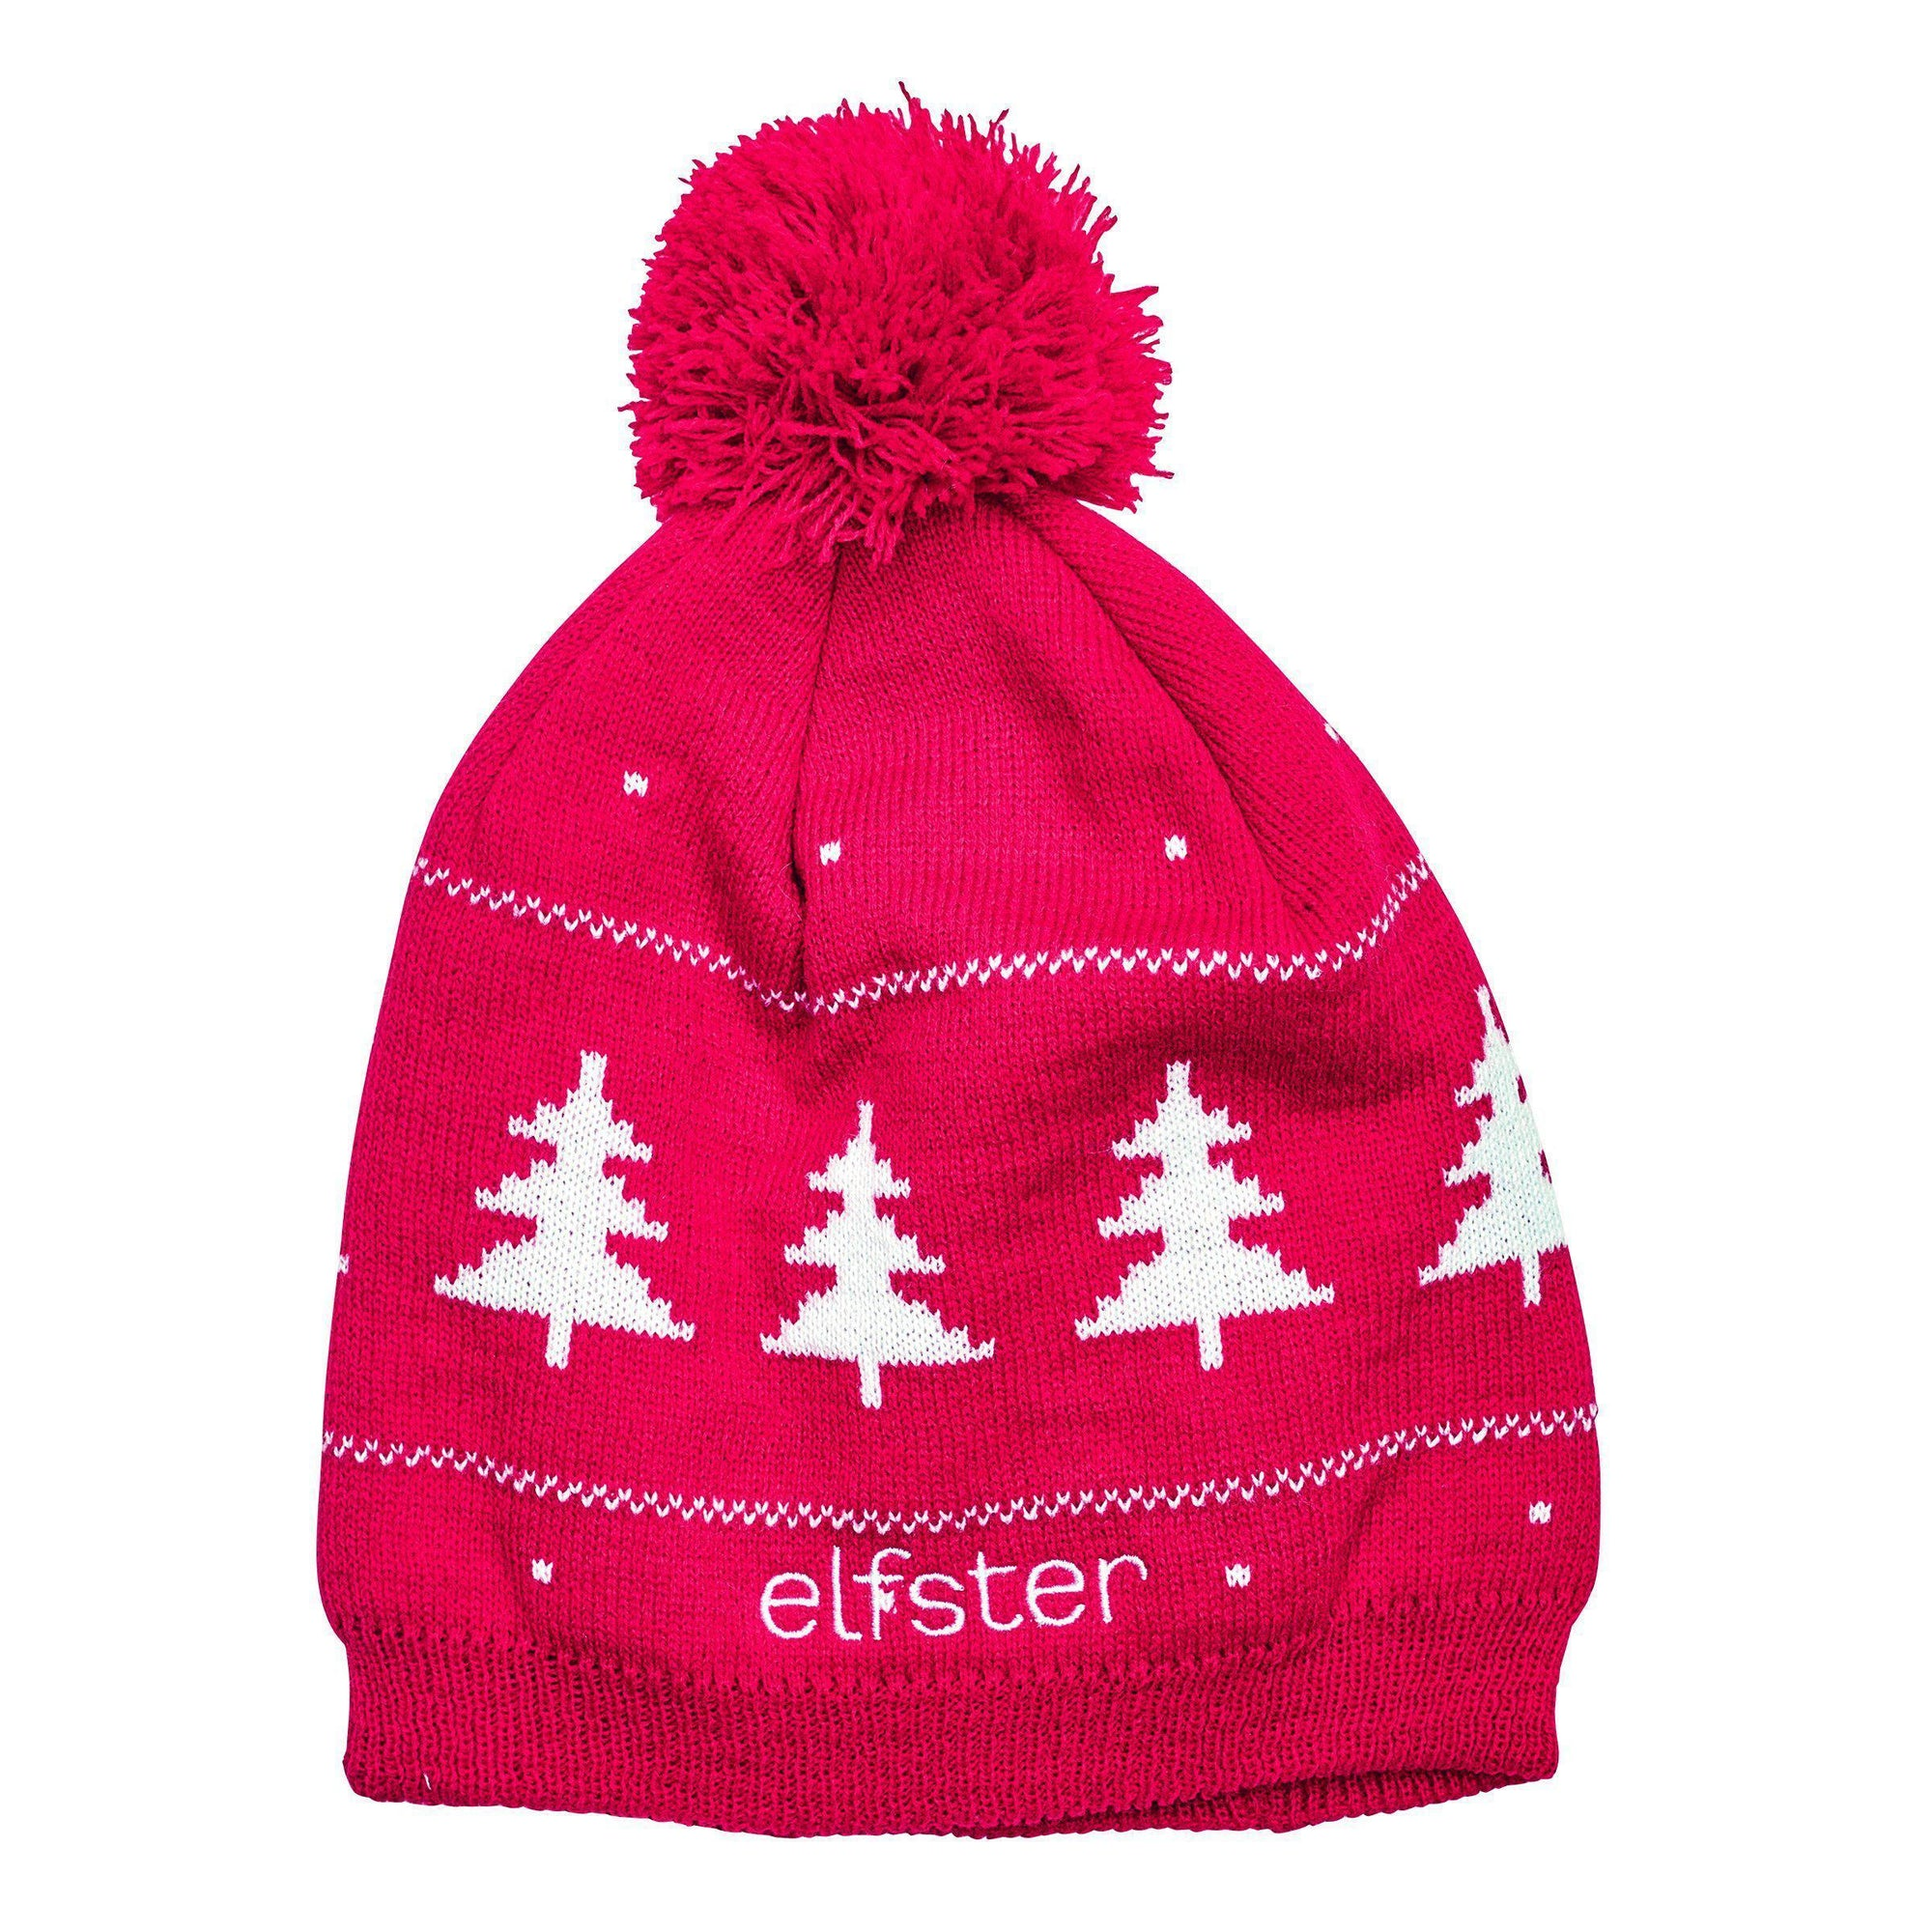 Elfster Ugly Christmas Sweater Hat - San Diego Hat Company